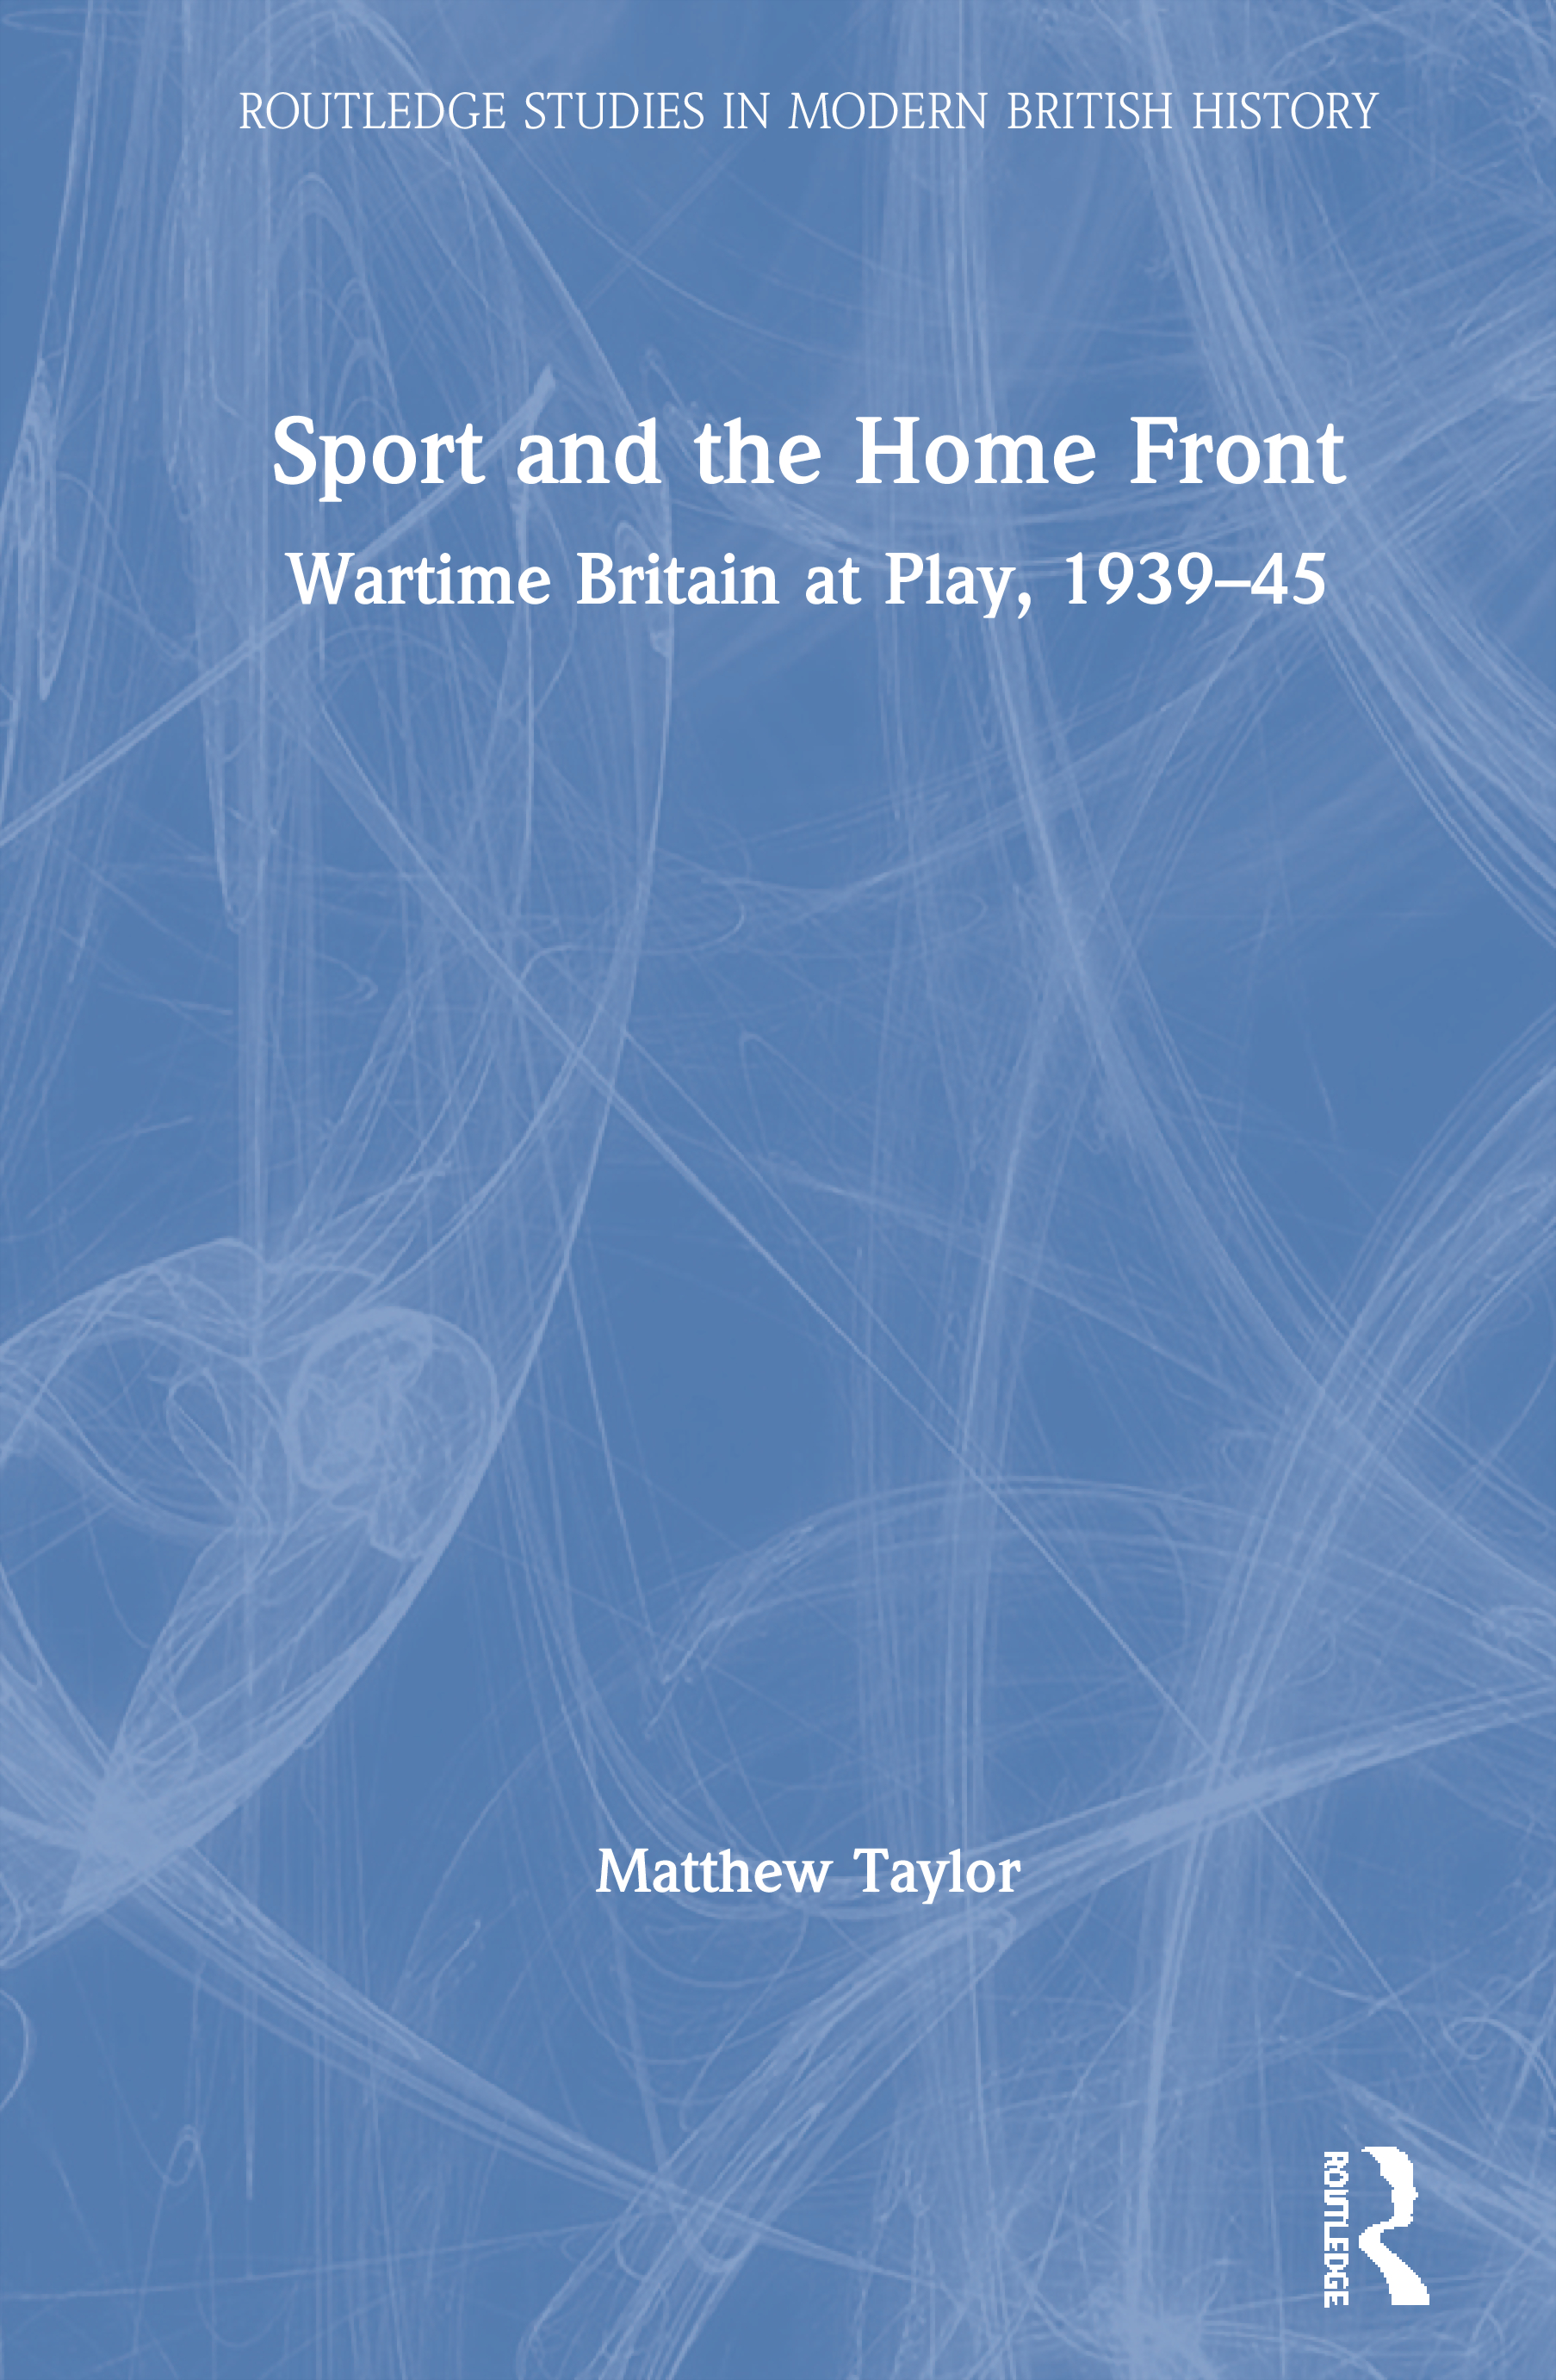 Sport and the Home Front: Wartime Britain at Play, 1939-45 book cover